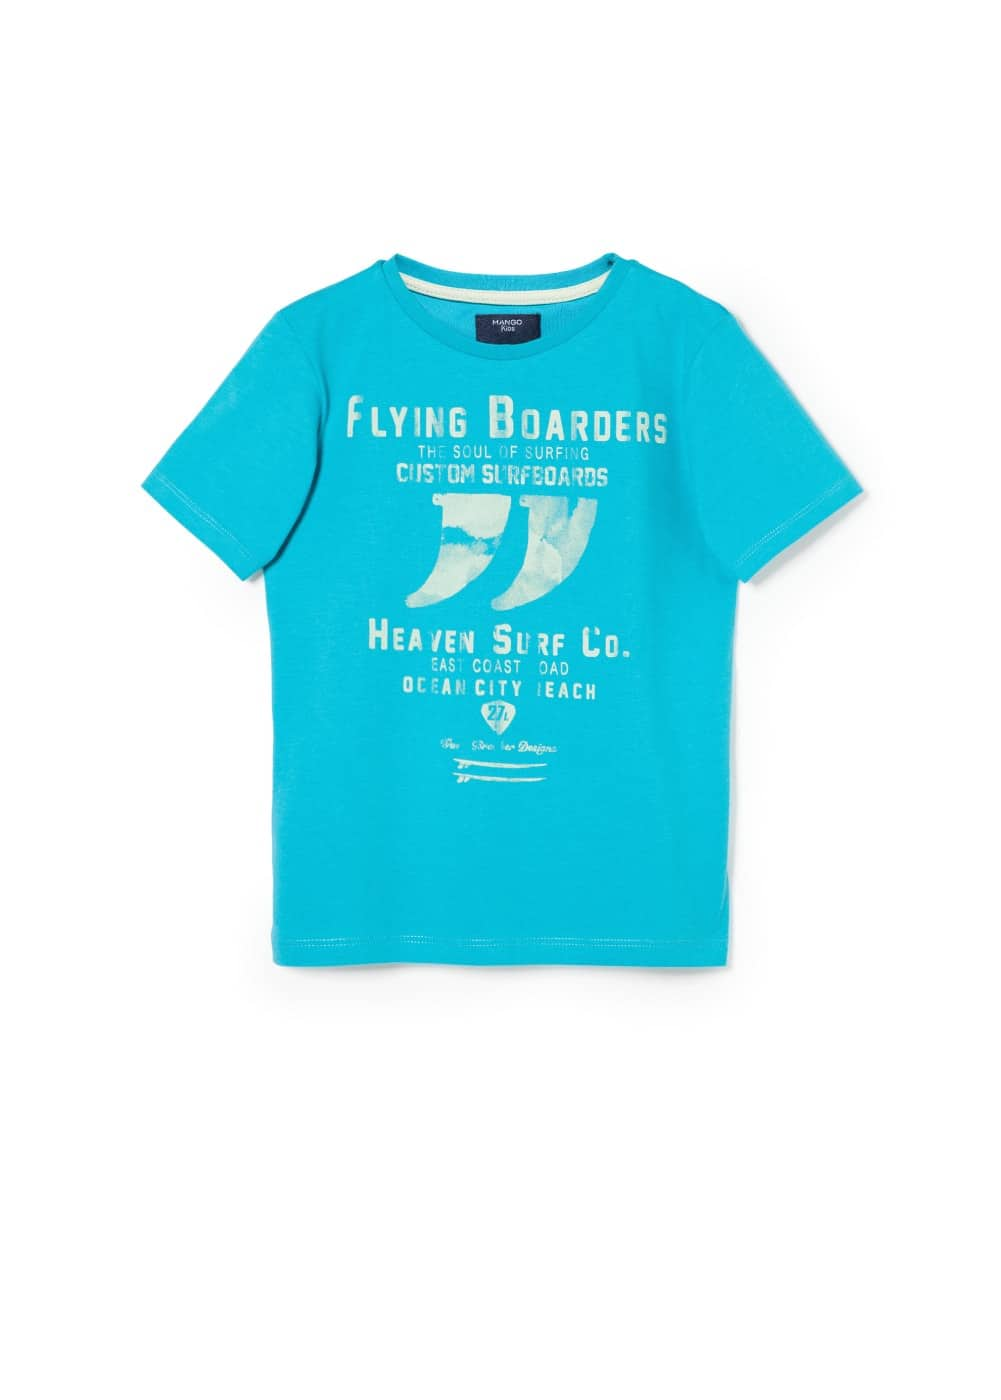 Flying Boarders t-shirt